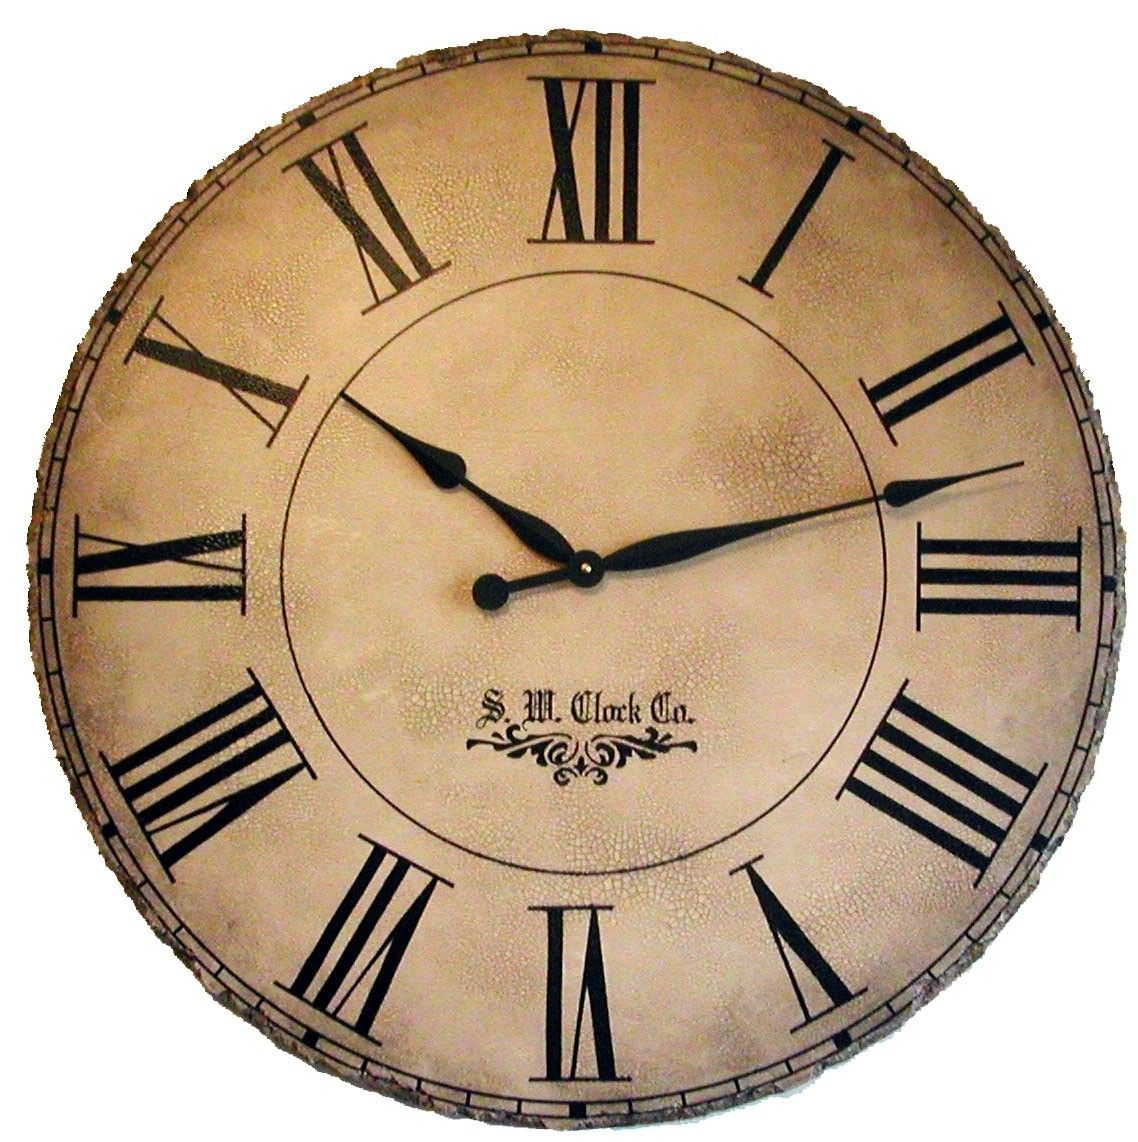 36 Grand Gallery extra large wall clock Roman by Klocktime